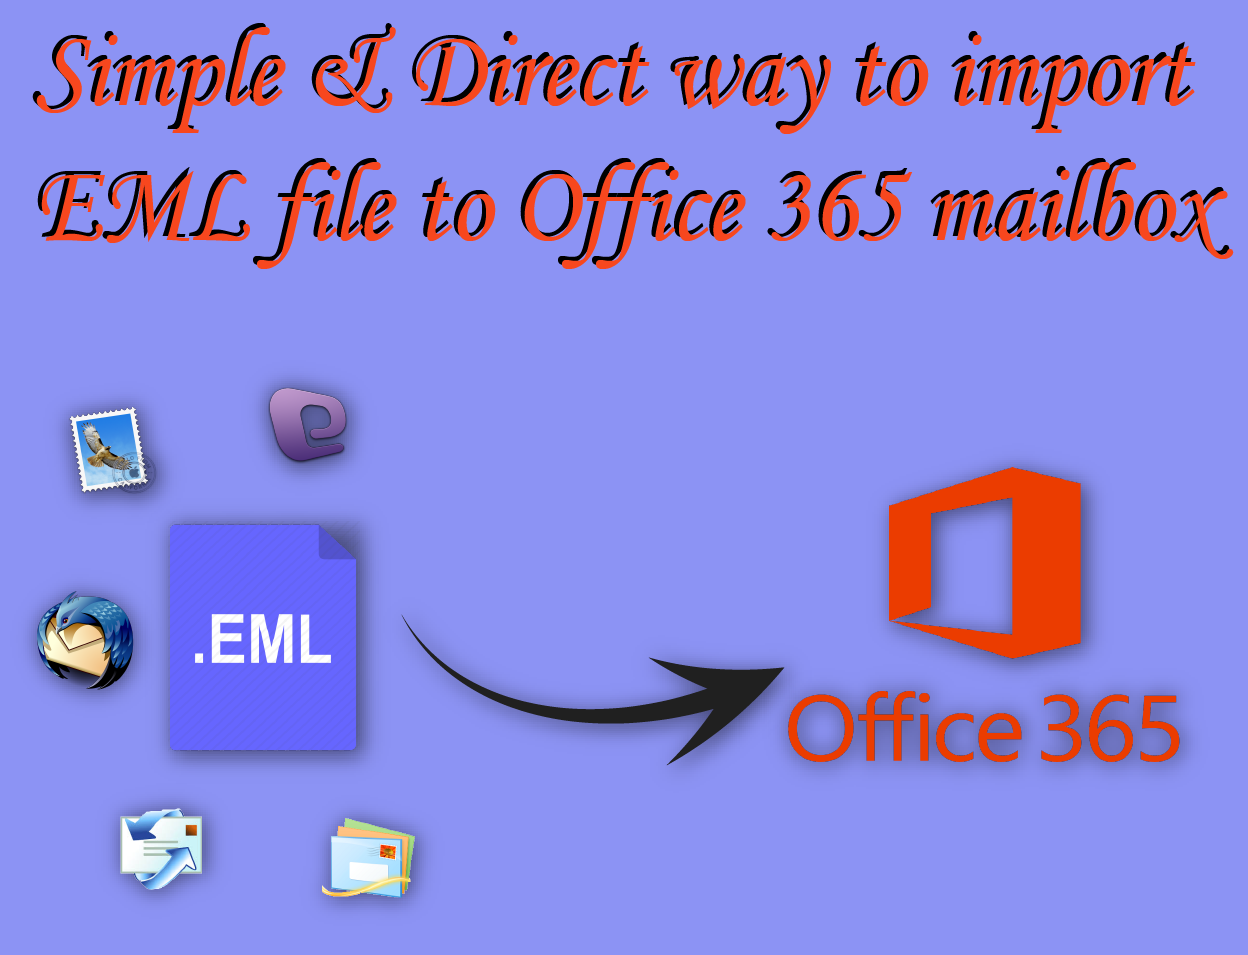 Simple & Direct way to import EML files to Office 365 in few clicks - Iv Blogger